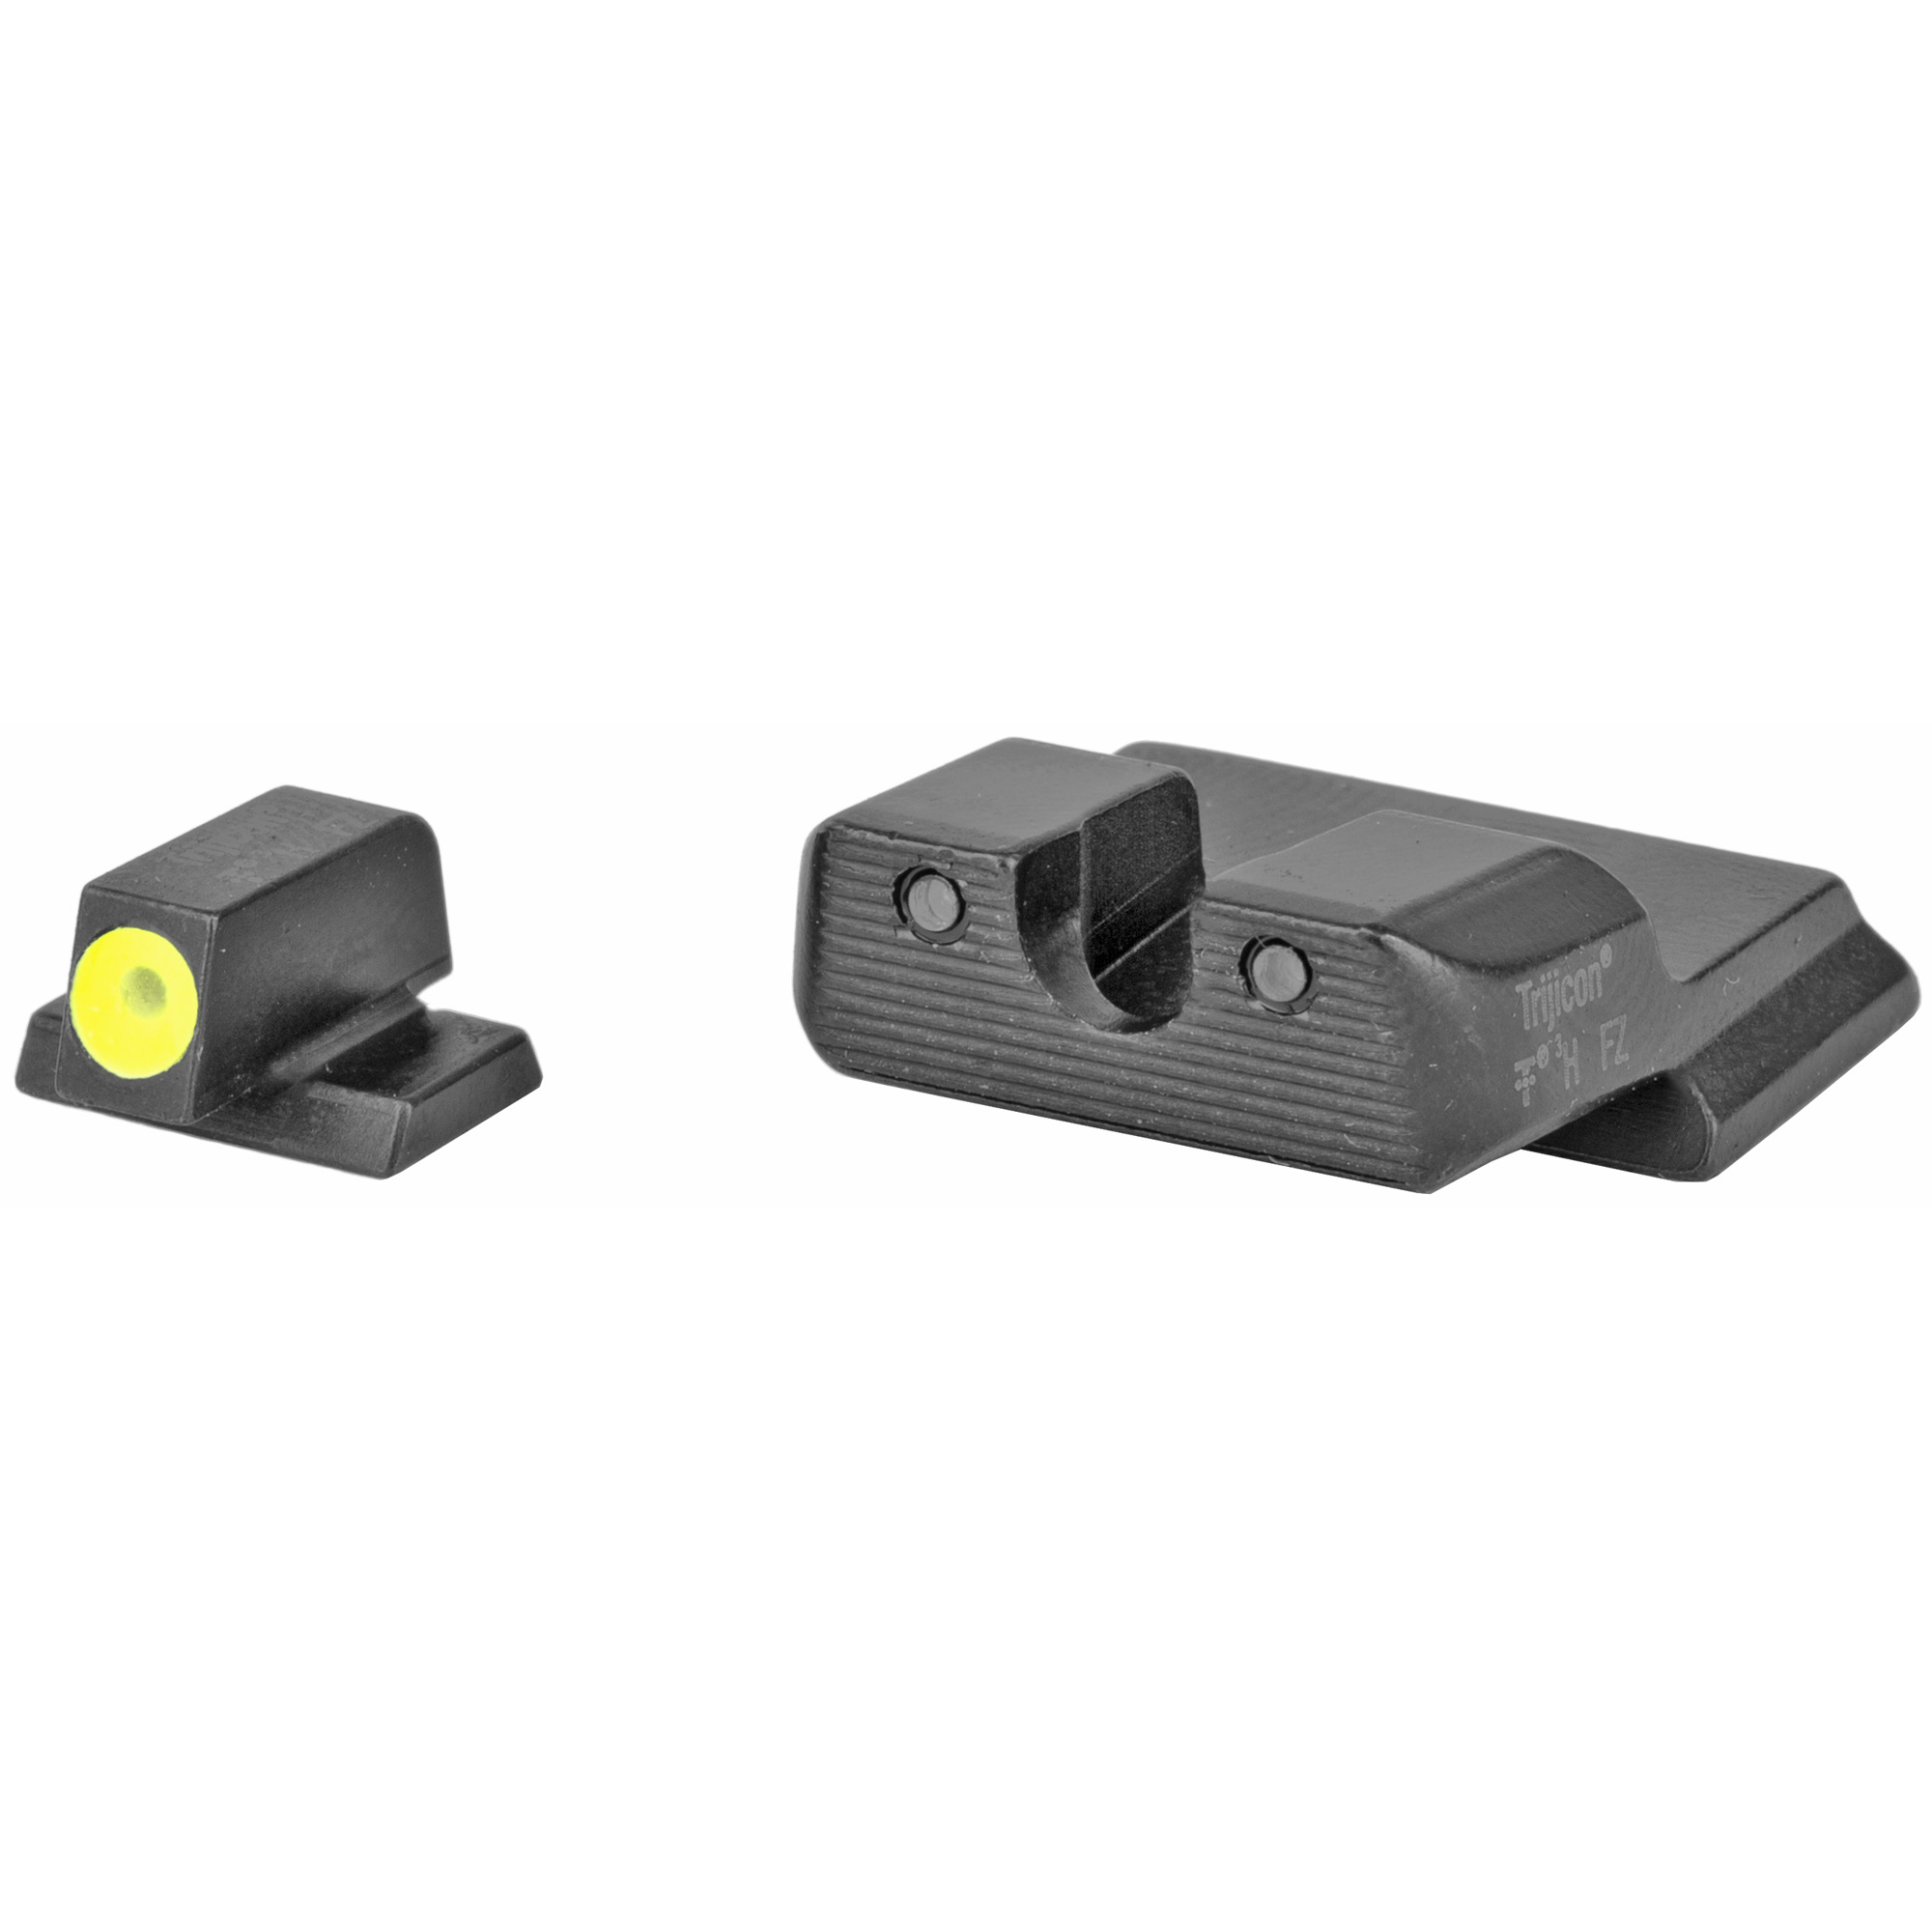 "S&W M&P Shield(TM) HD Night Sight Set - Yellow: The HD Night Sights were specifically created to address the needs of tactical shooters. The three dot green tritium night sight set's front sight features a taller blade and an aiming point ringed in photoluminescent paint while the rear sight is outlined in black and features a wider U-shaped notch. This unique configuration increases visibility and quickens front sight acquisition-even in transitional lighting. Additionally"" the front surface of the rear sight is steeply hooked to assist in emergency one-handed slide operation. Green tritium lamps are warranted for 12 years from date of manufacture."